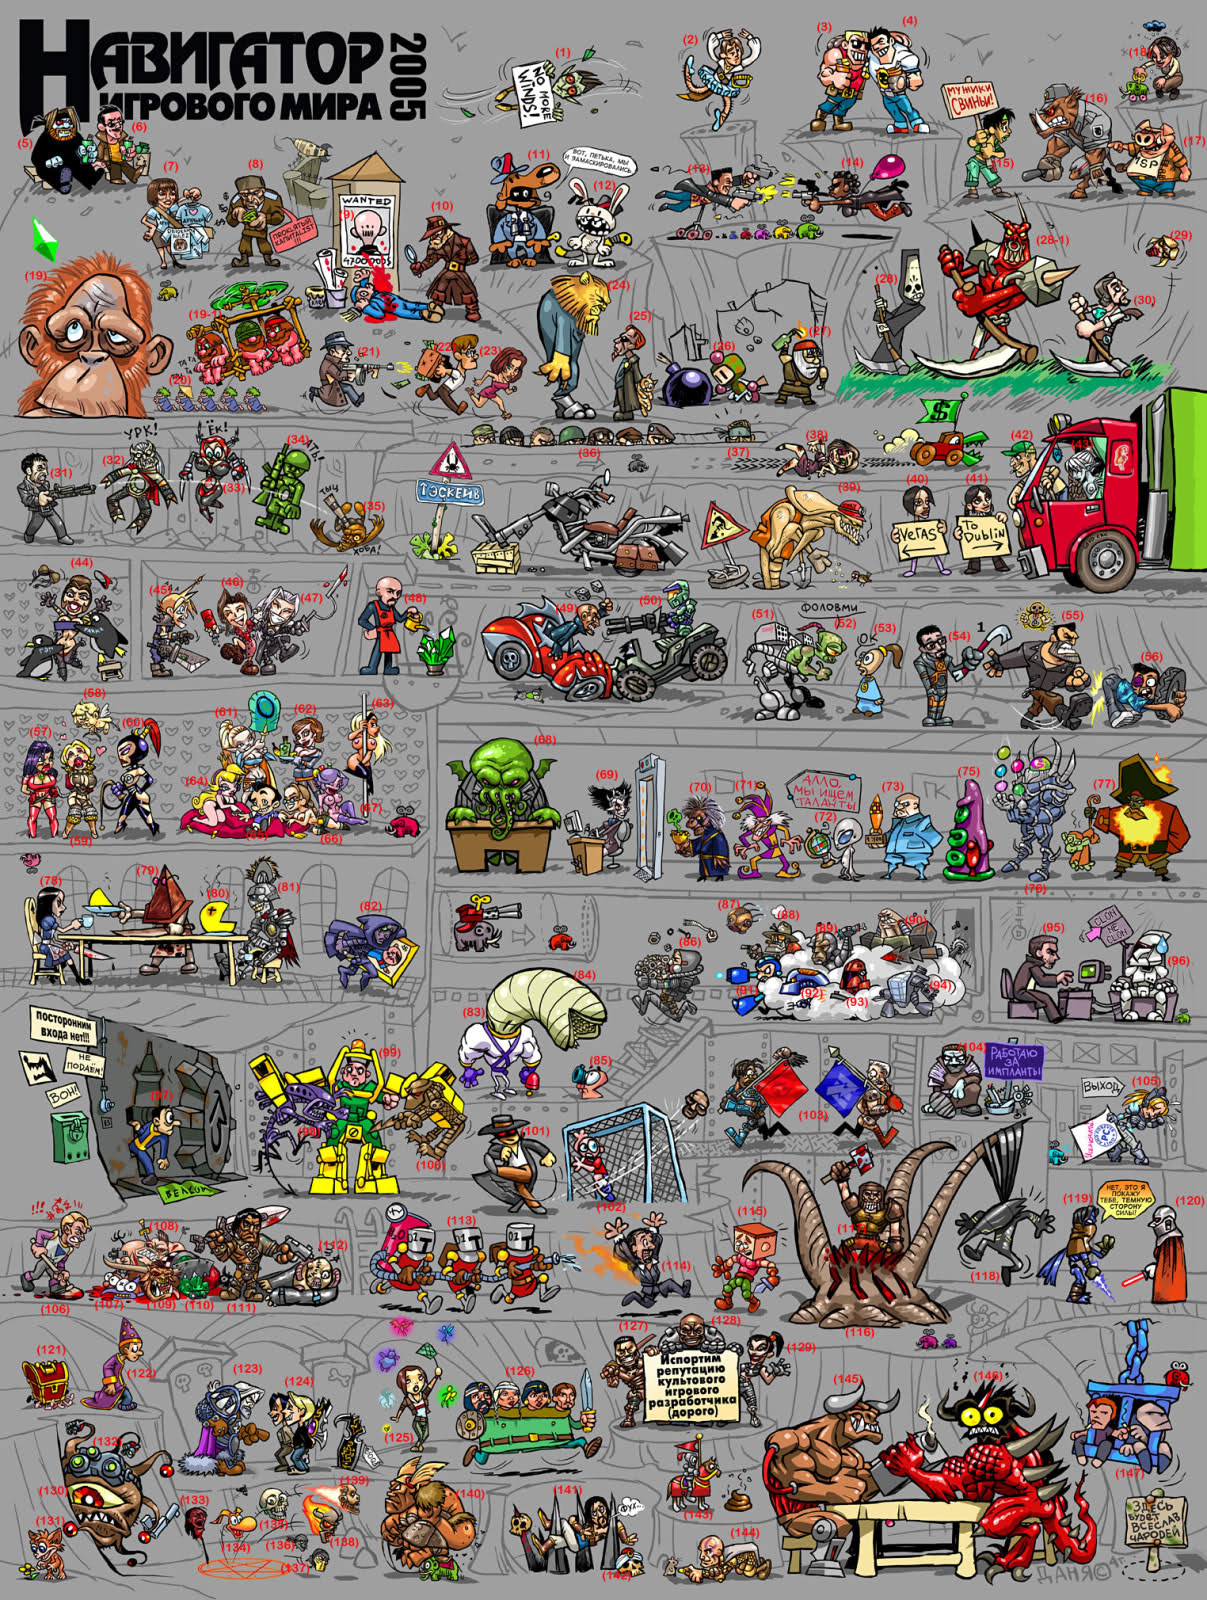 Game character names list